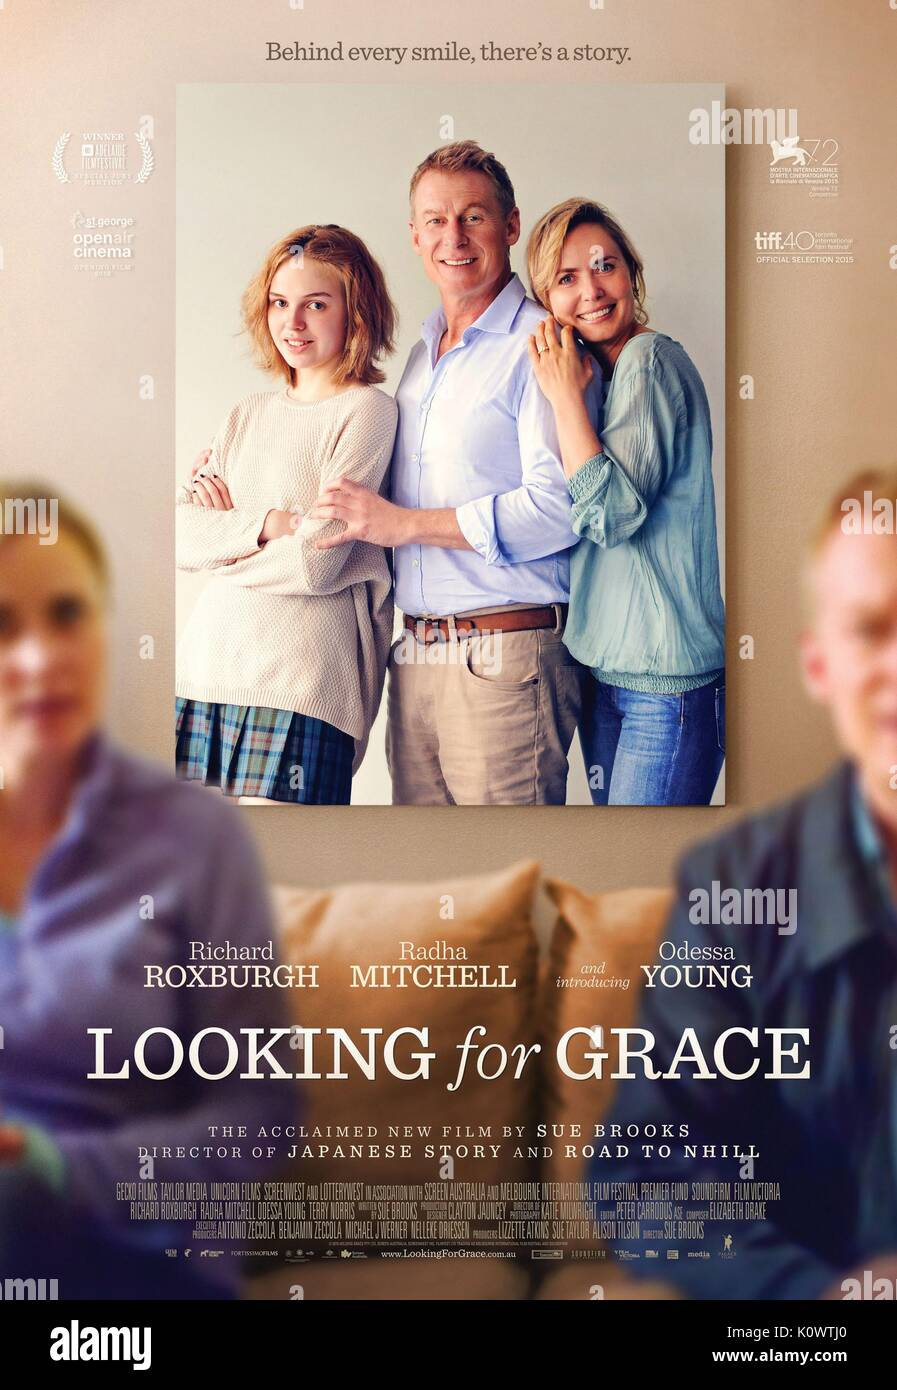 ODESSA YOUNG RICHARD ROXBURGH & RADHA MITCHELL LOOKING FOR GRACE (2015) - Stock Image